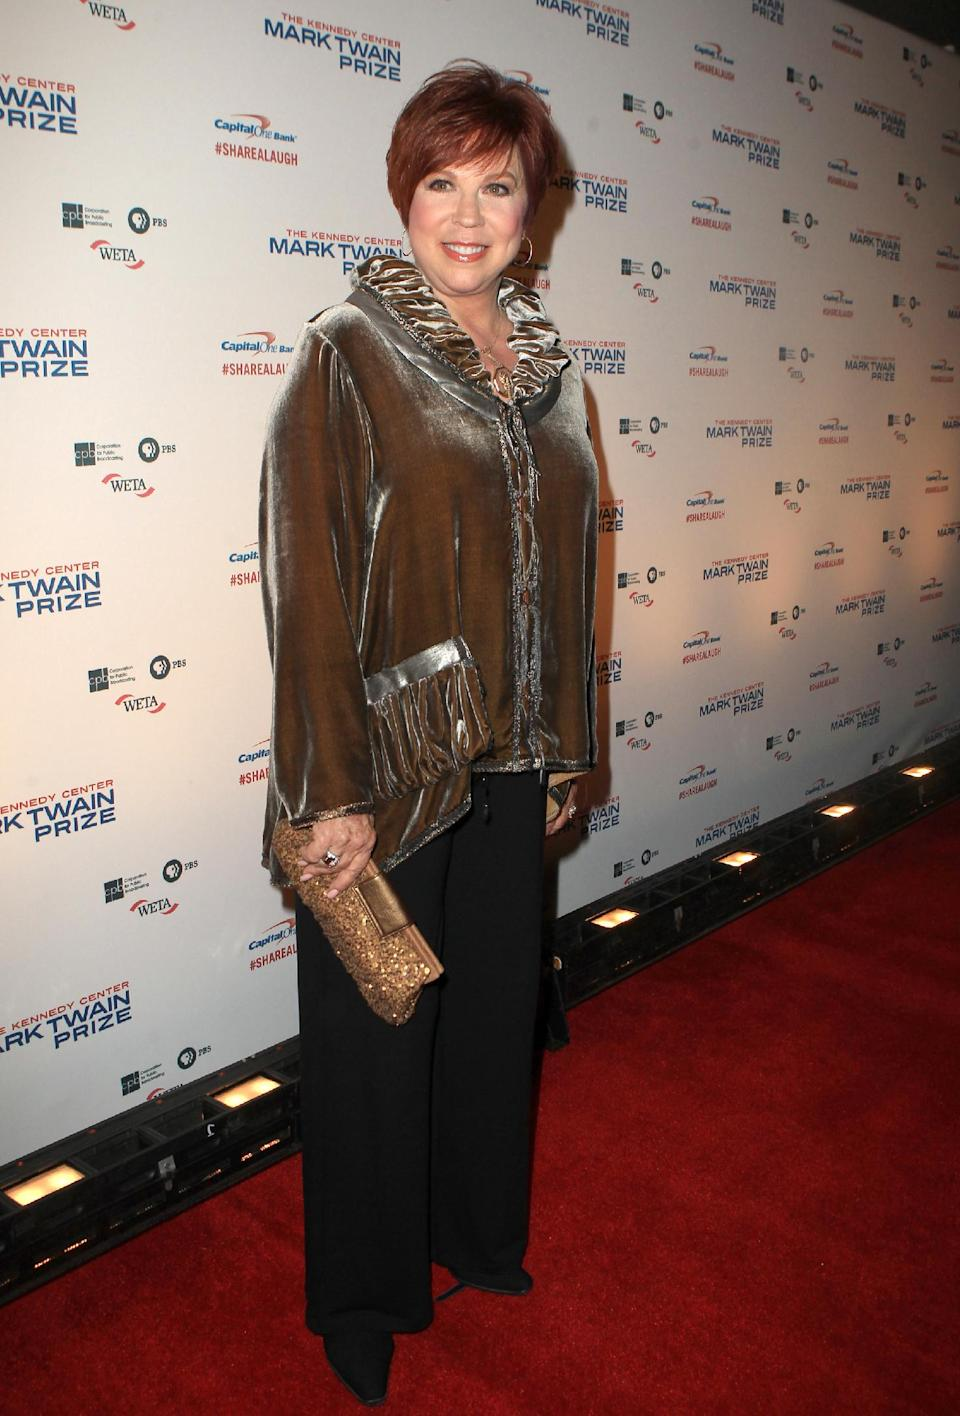 Vicki Lawrence arrives at 16th Annual Mark Twain Prize presented to Carol Burnett at the Kennedy Center on Sunday, Oct. 20, 2013 in Washington, D.C. (Photo by Owen Sweeney/Invision/AP)